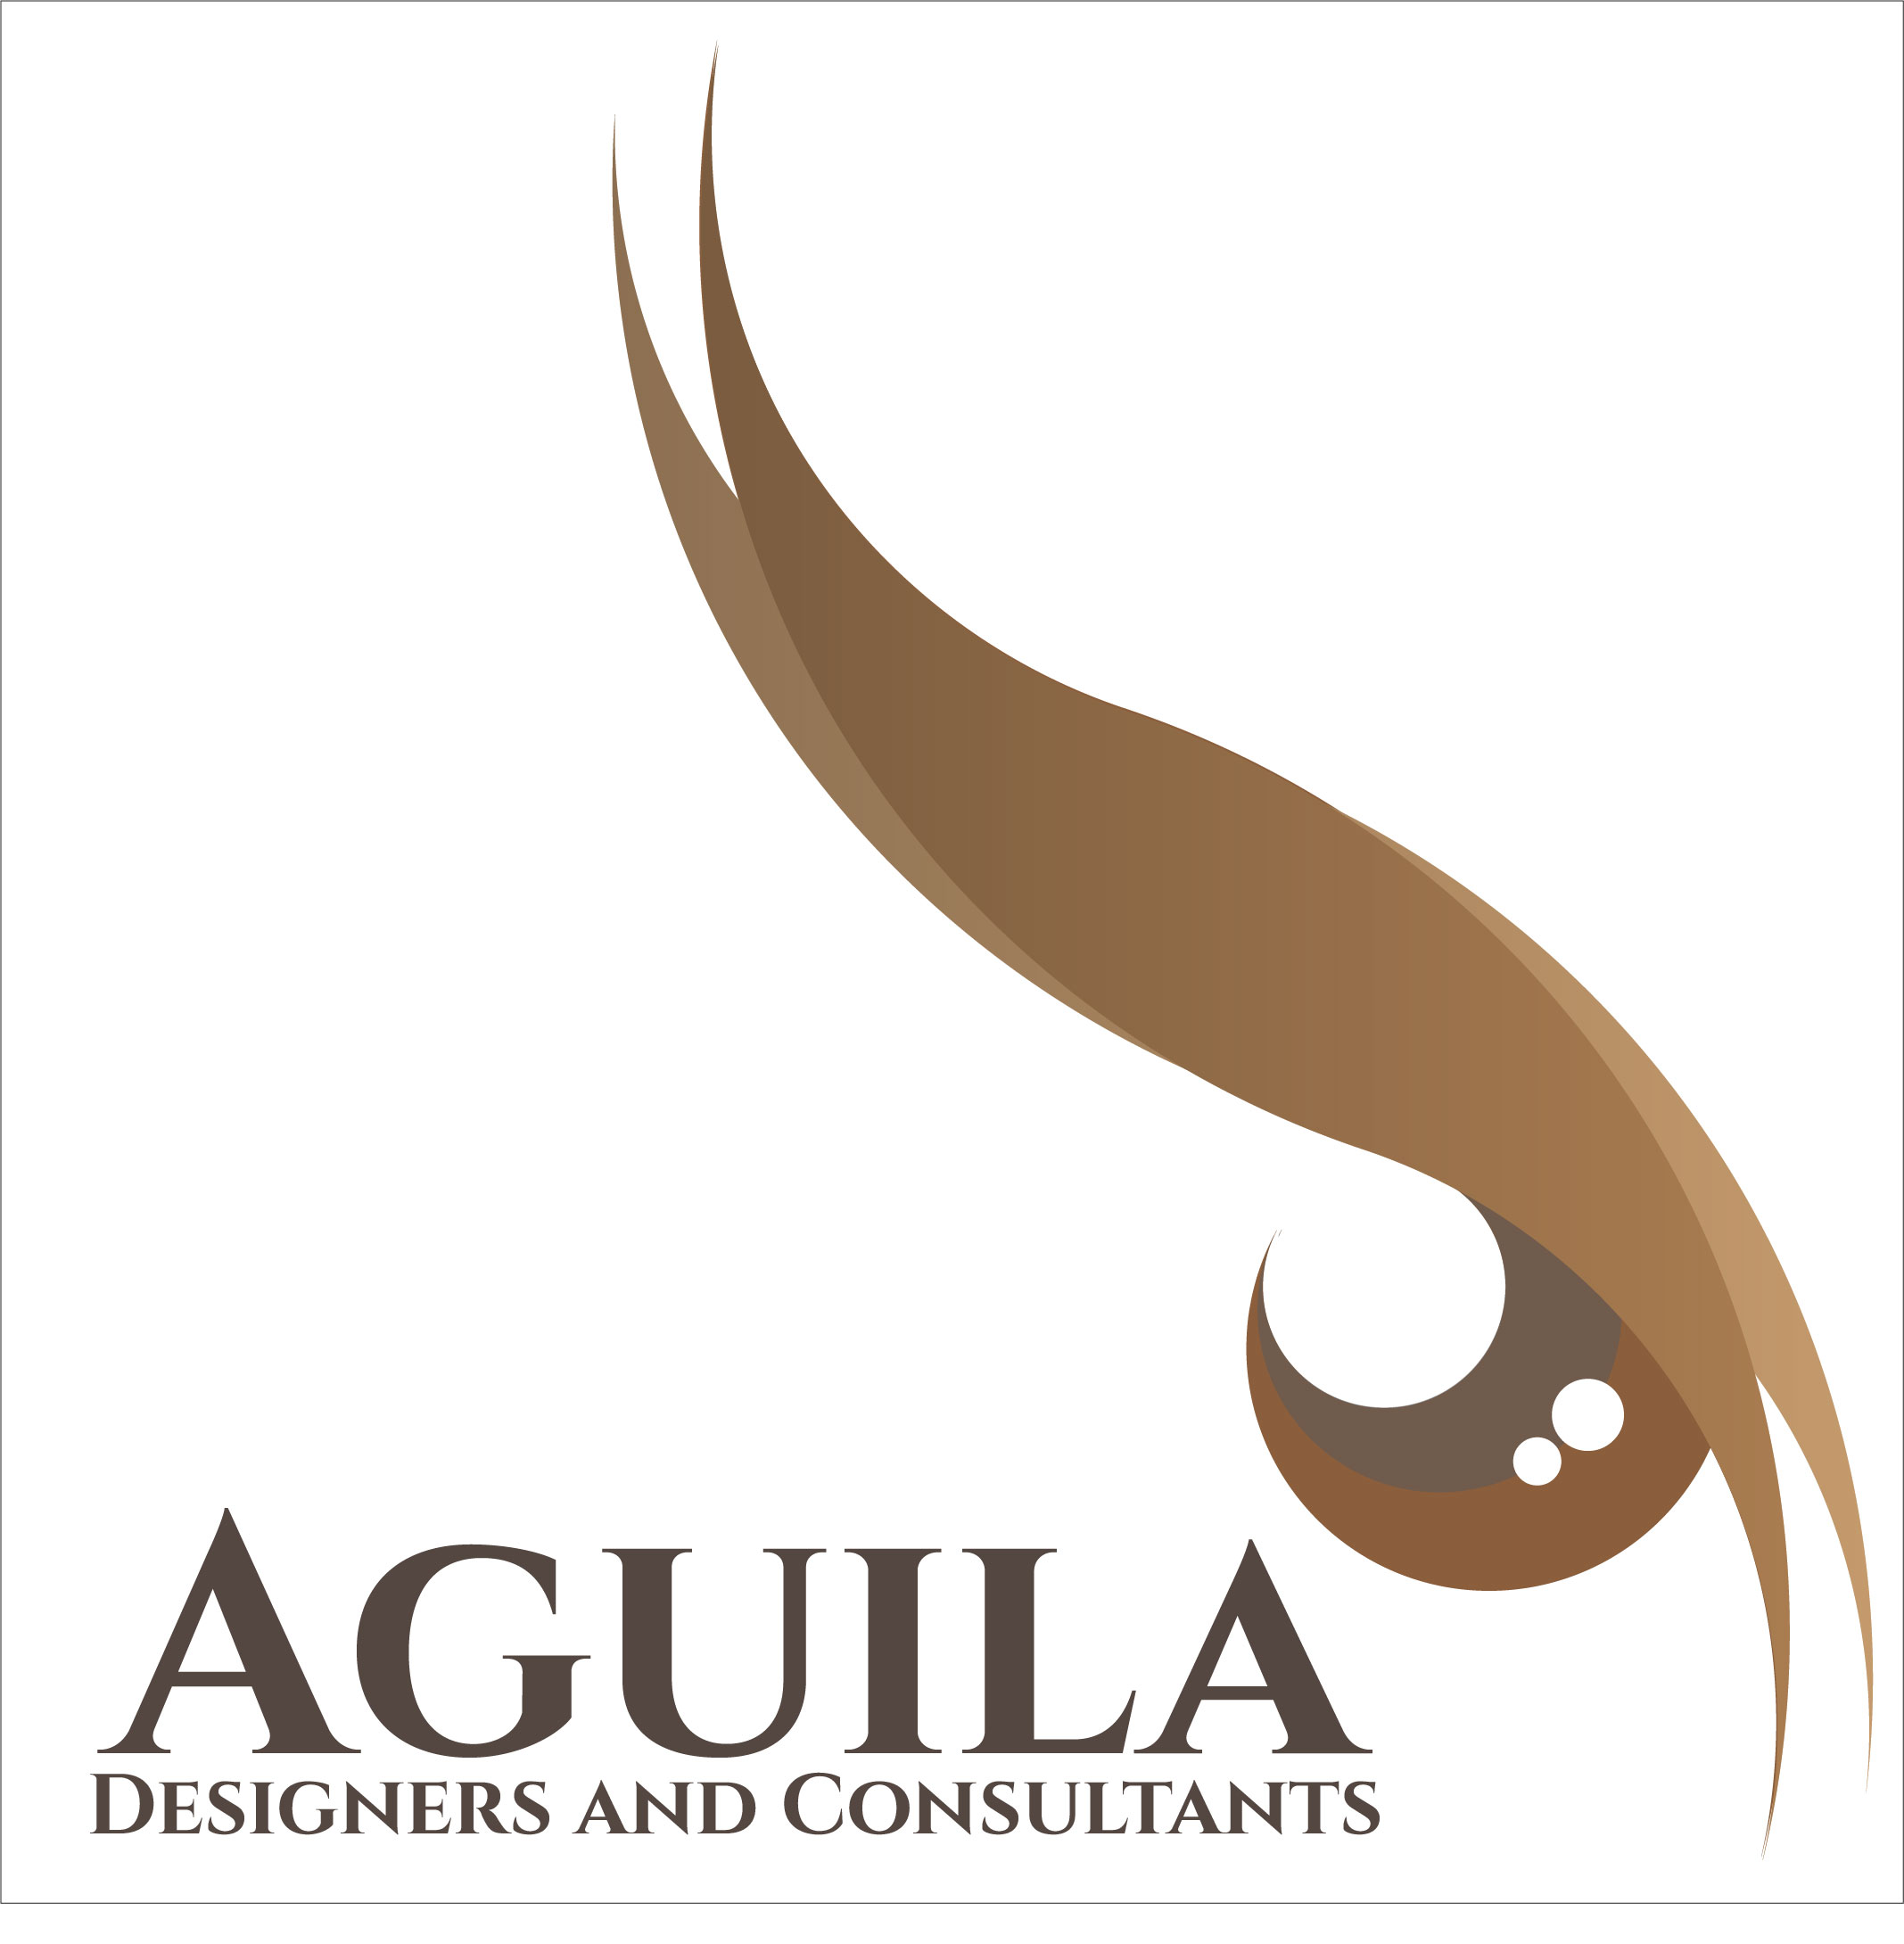 AGUILA DESIGNERS AND CONSULTANTS PVT LTD ( STALL NO 4F15)